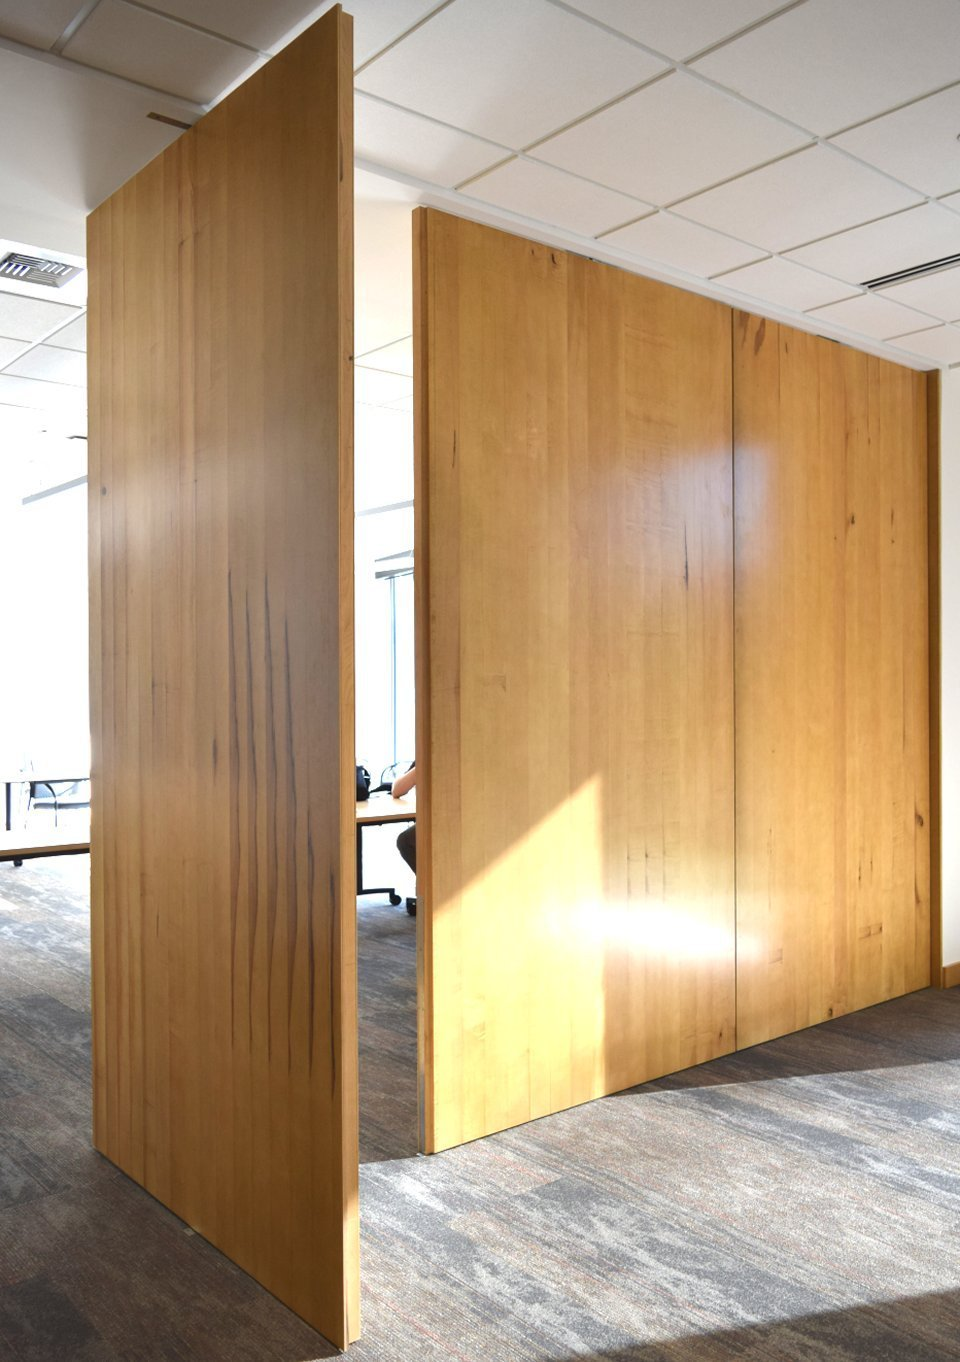 Wooden Room Divider Warping Patented Wooden Pivot Folding Room Dividers Are Best Ideas